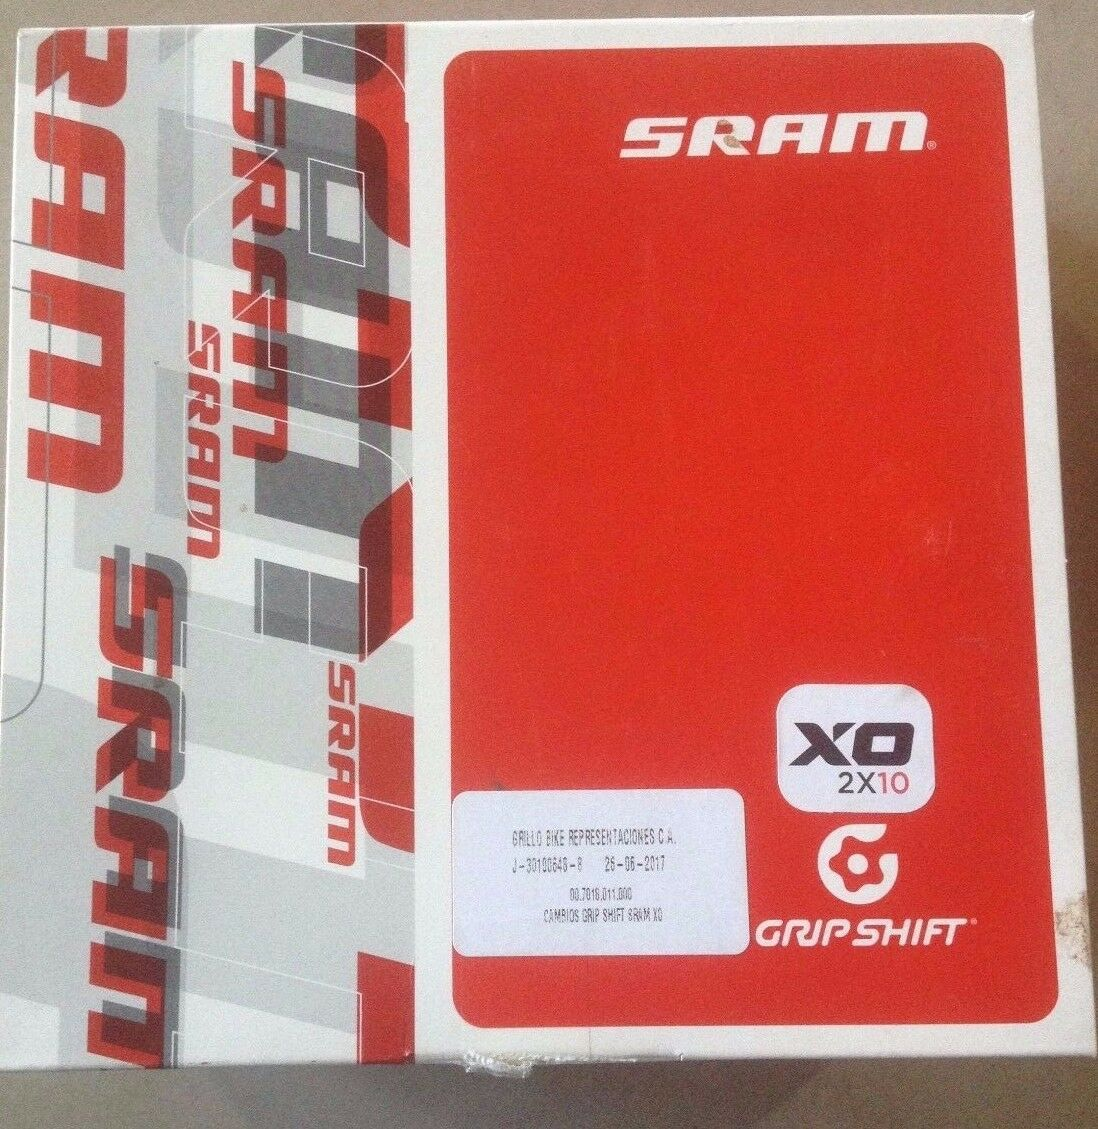 New 2x10 X0 Grip Shift Set rot with Locking Grips. New in Box